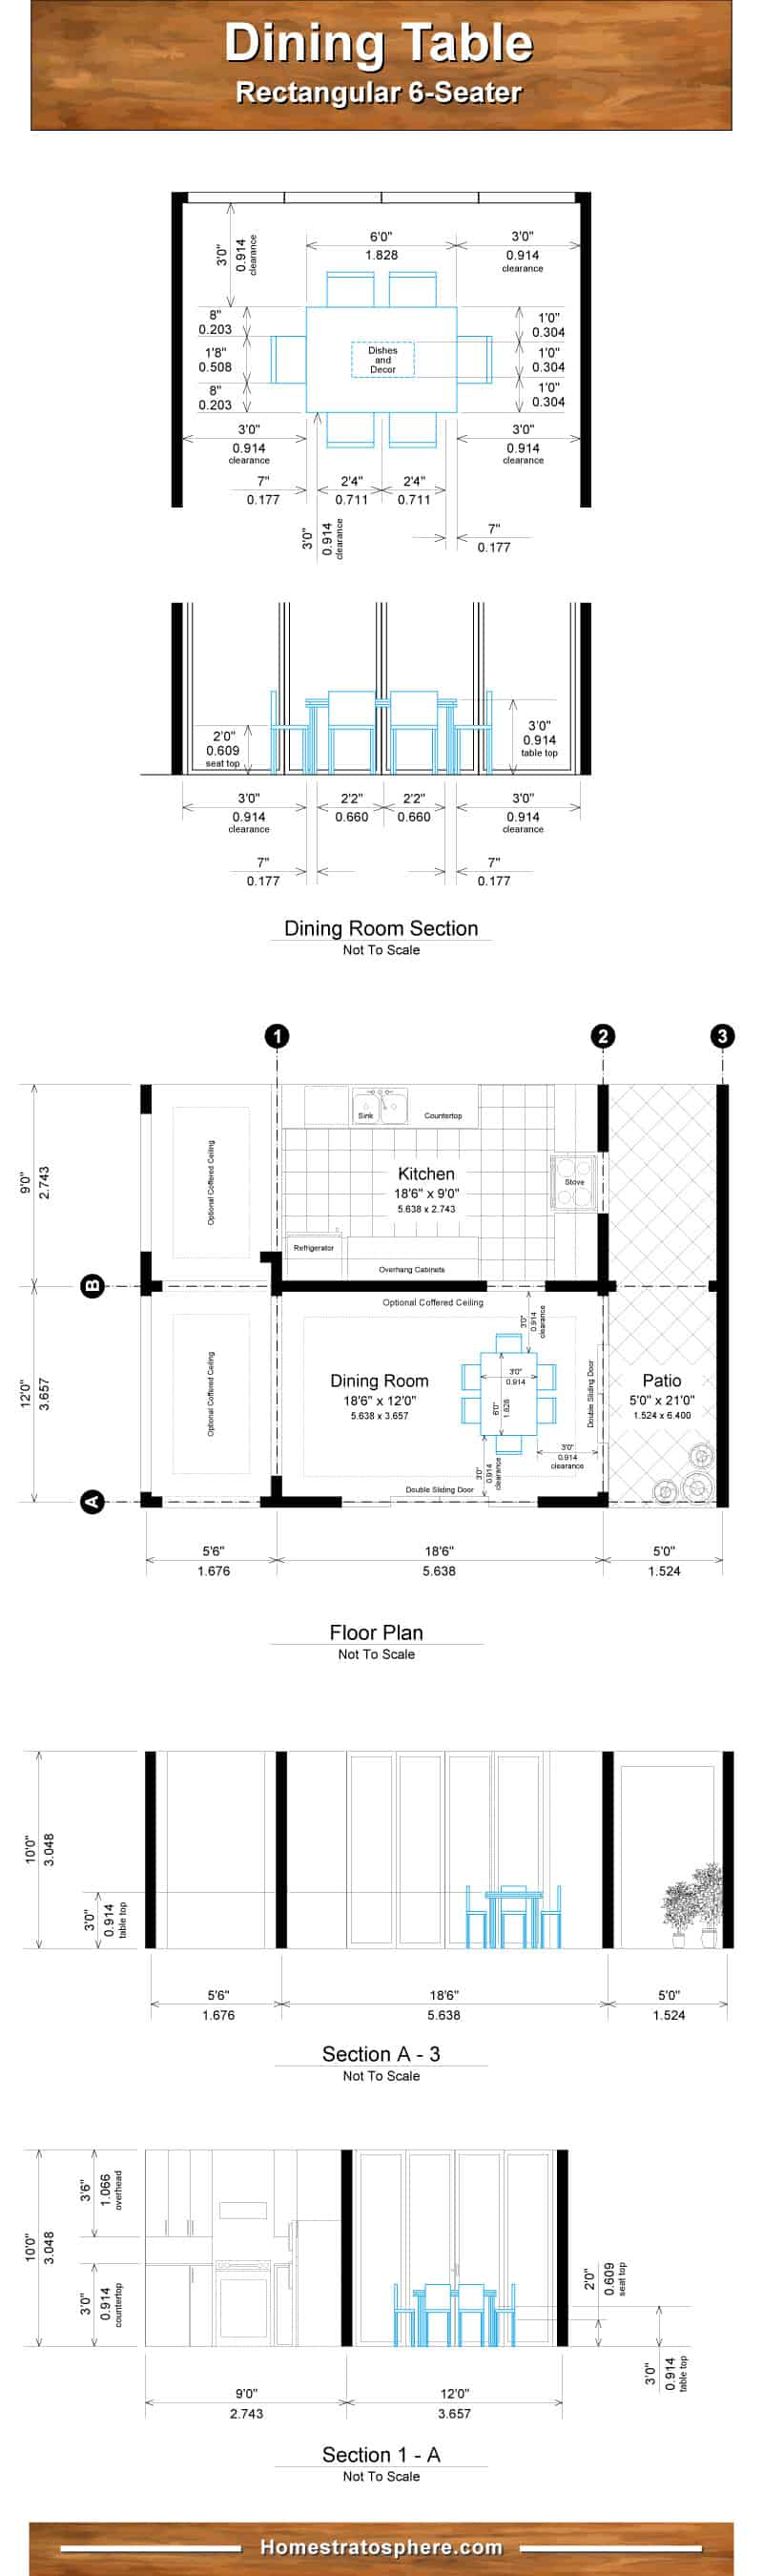 Diagram setting out dining room and table dimensions for 6 people